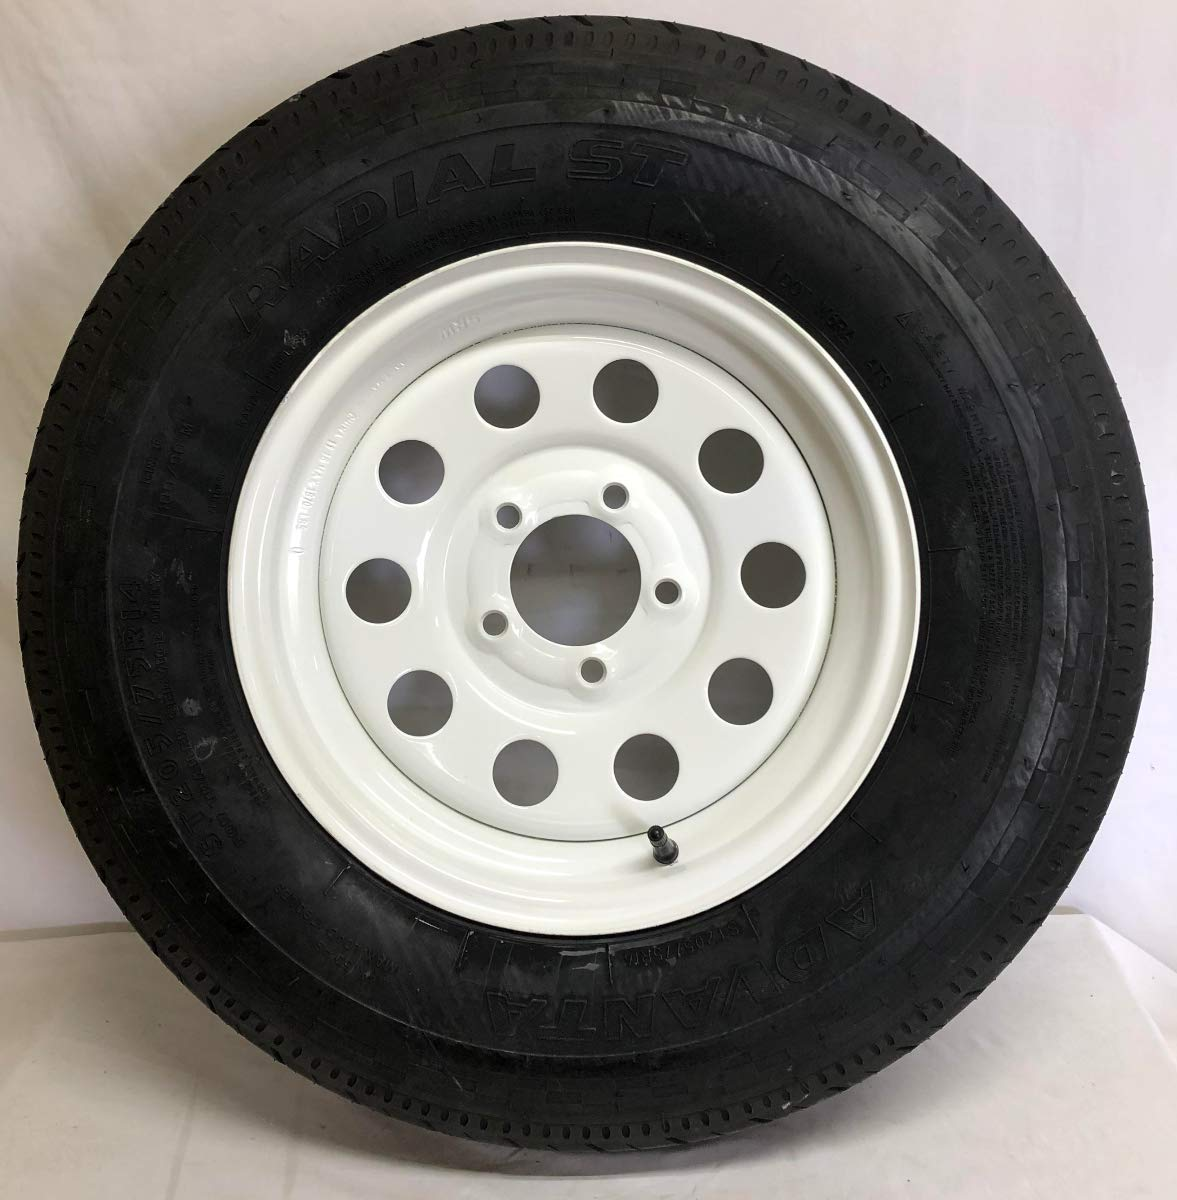 New 14'' White Mod Trailer Wheel with Radial ST205/75R14 Tire Mounted (5x4.5) bolt circle